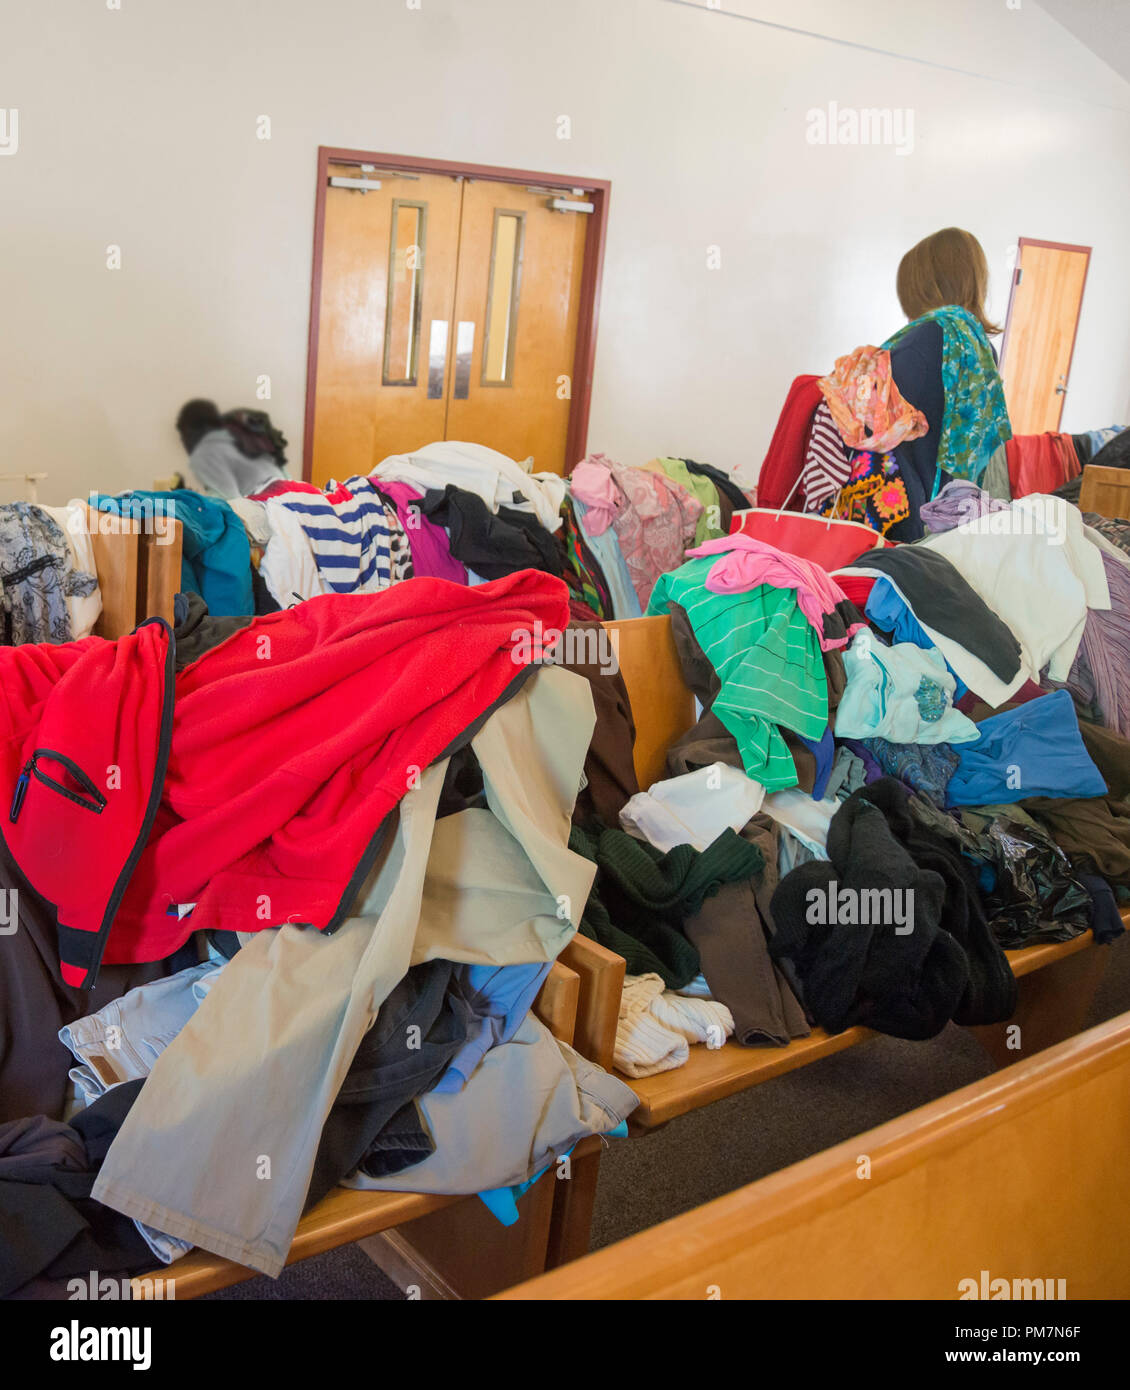 Church group hands out clothing and other items in the chapel of a homeless refuge in North Florida. - Stock Image